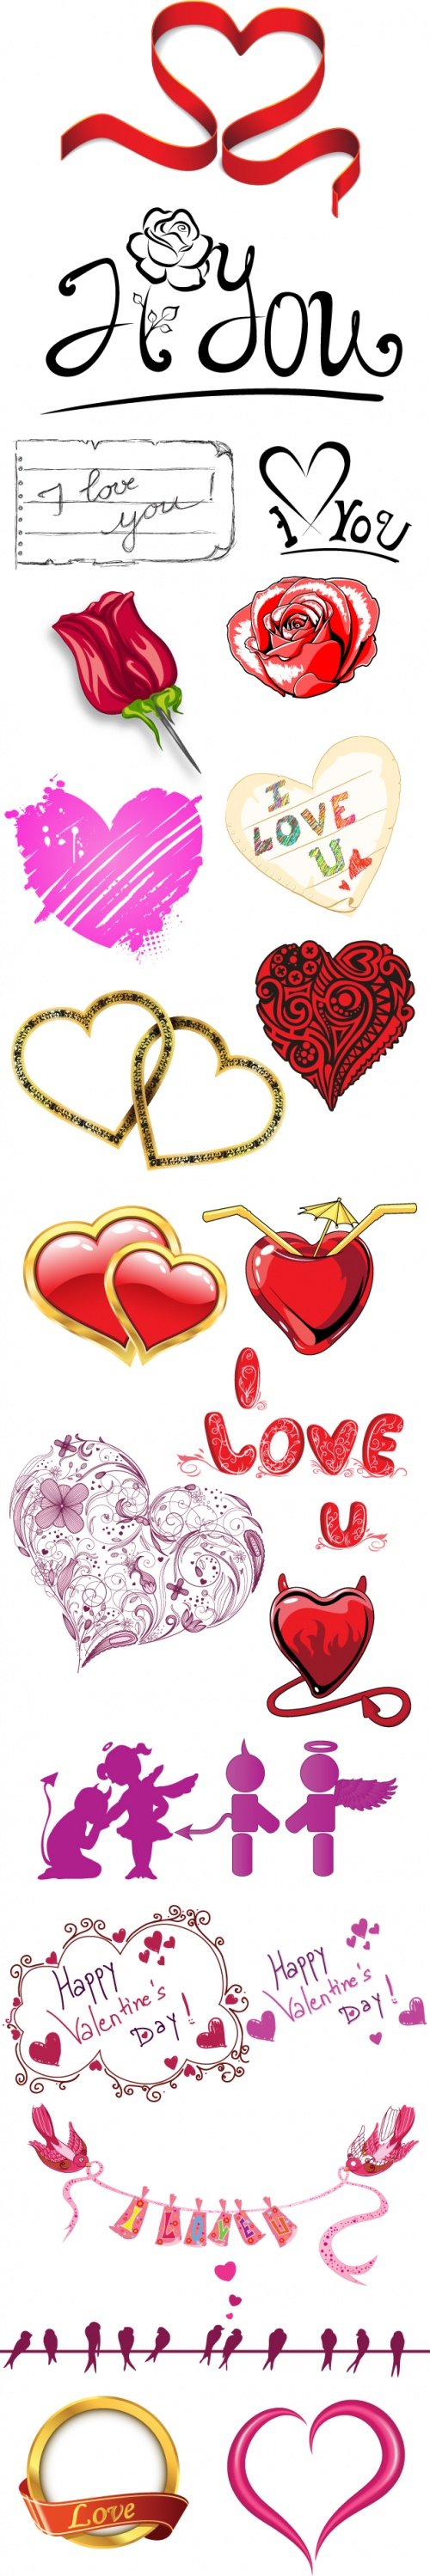 Designtnt - Valentines Vector Elements Set 1